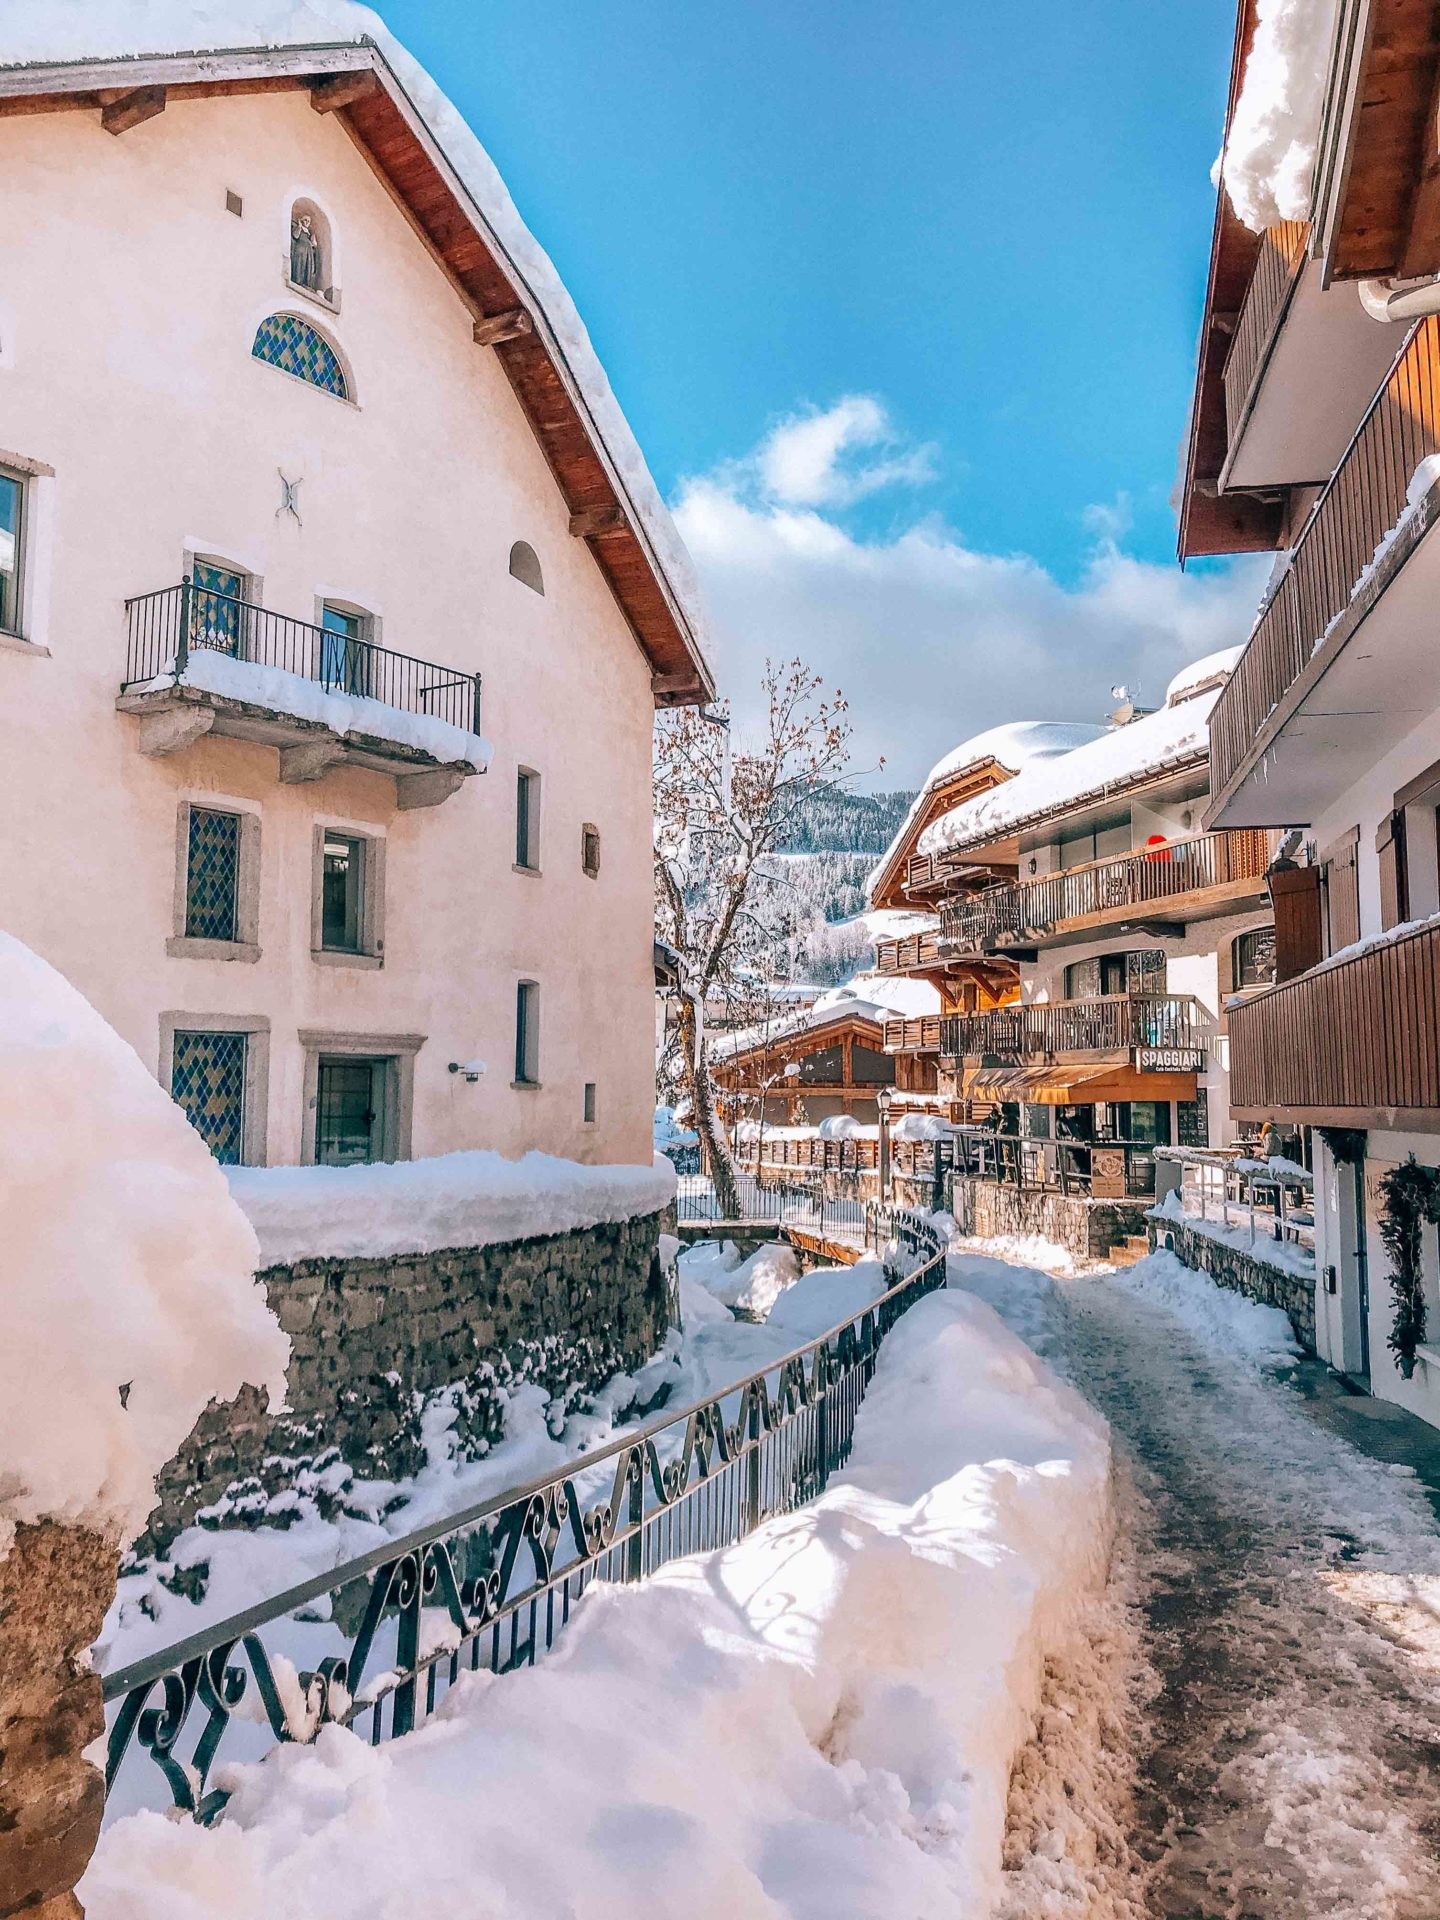 The charming streets of Megeve, France